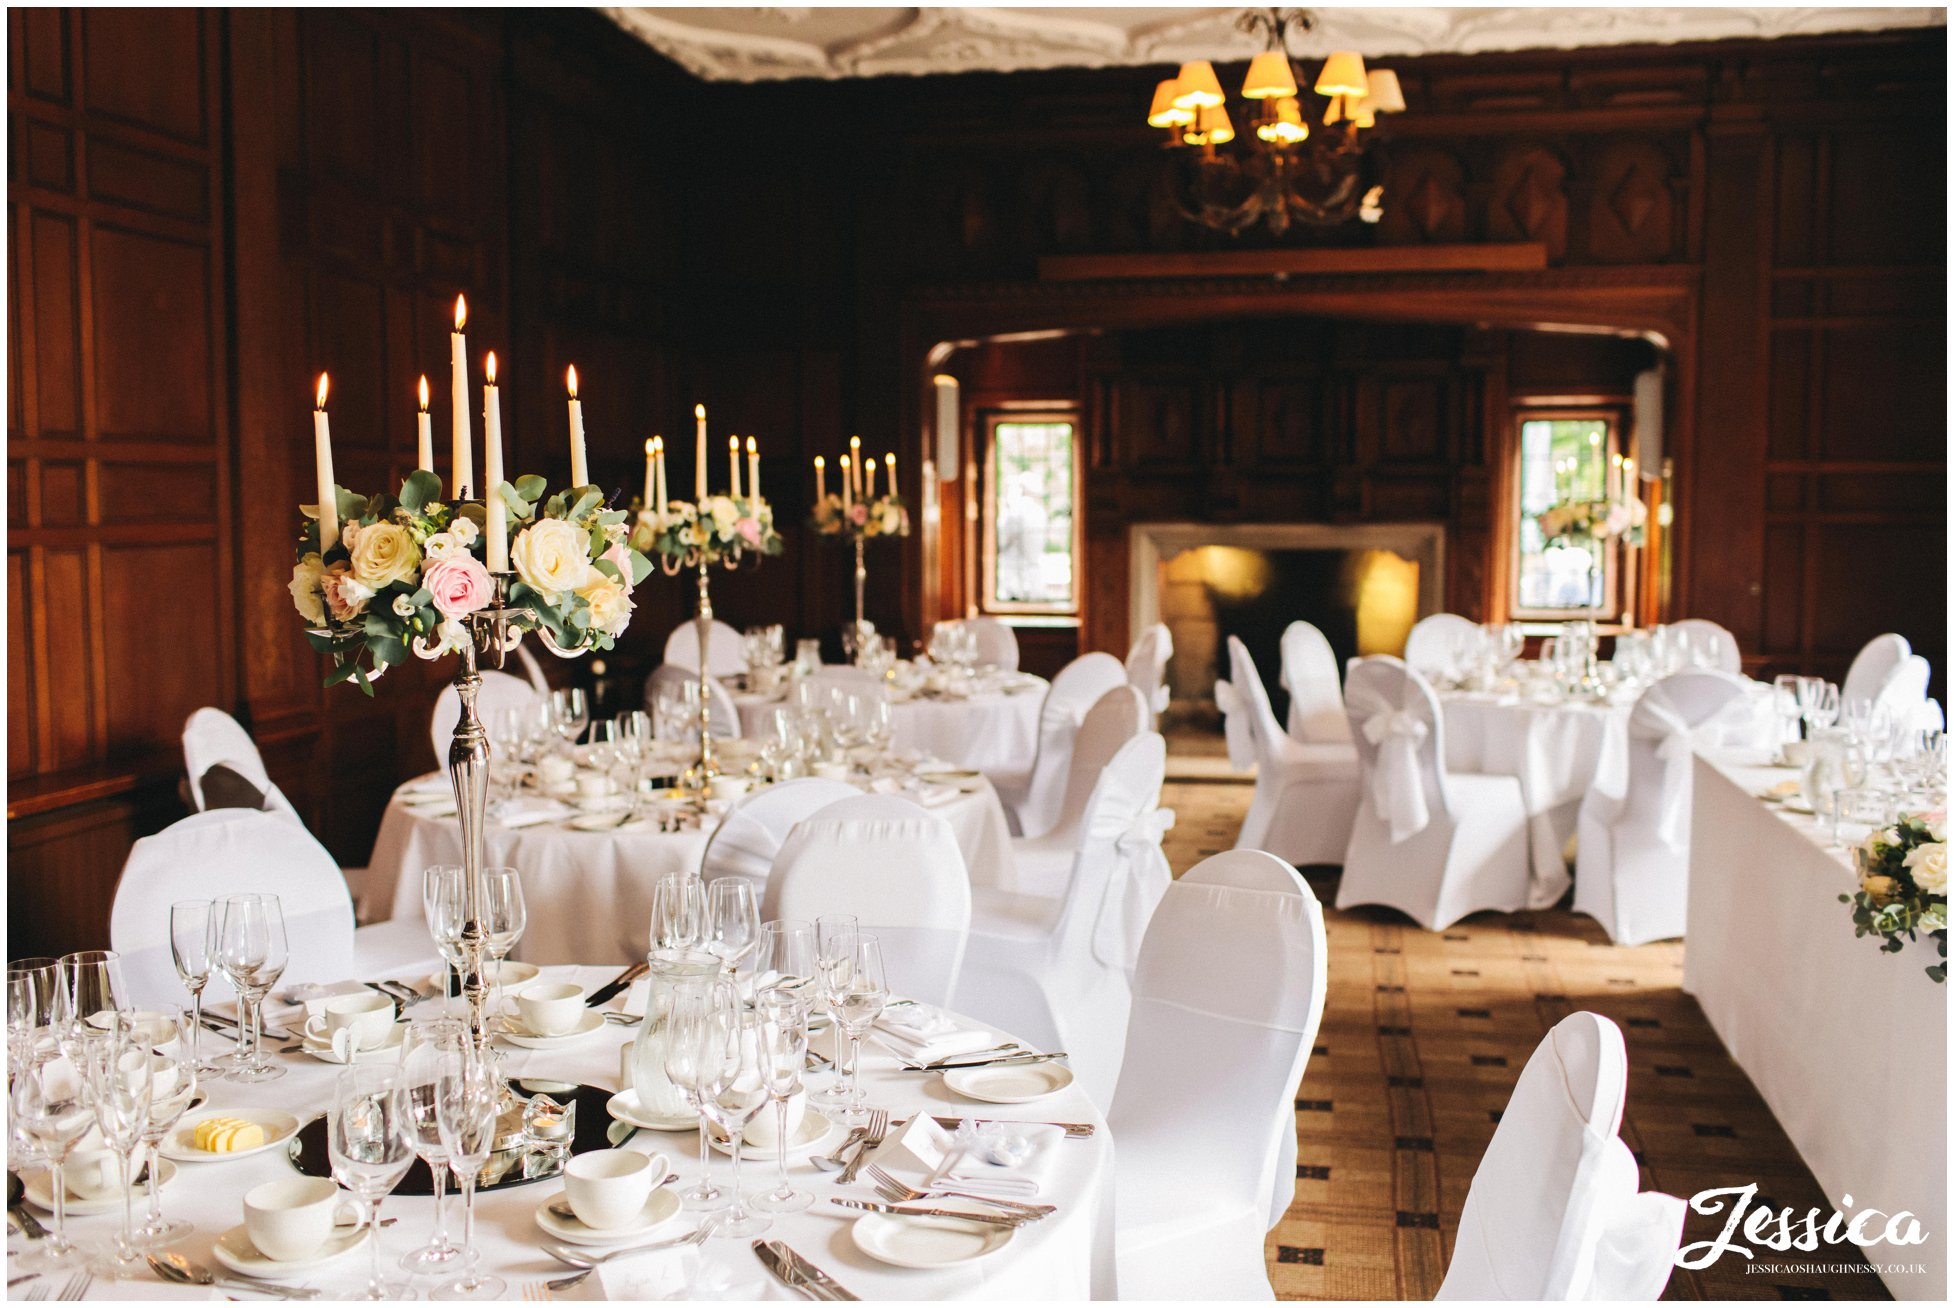 inglewood manor dressed with flower and candles for the wedding breakfast